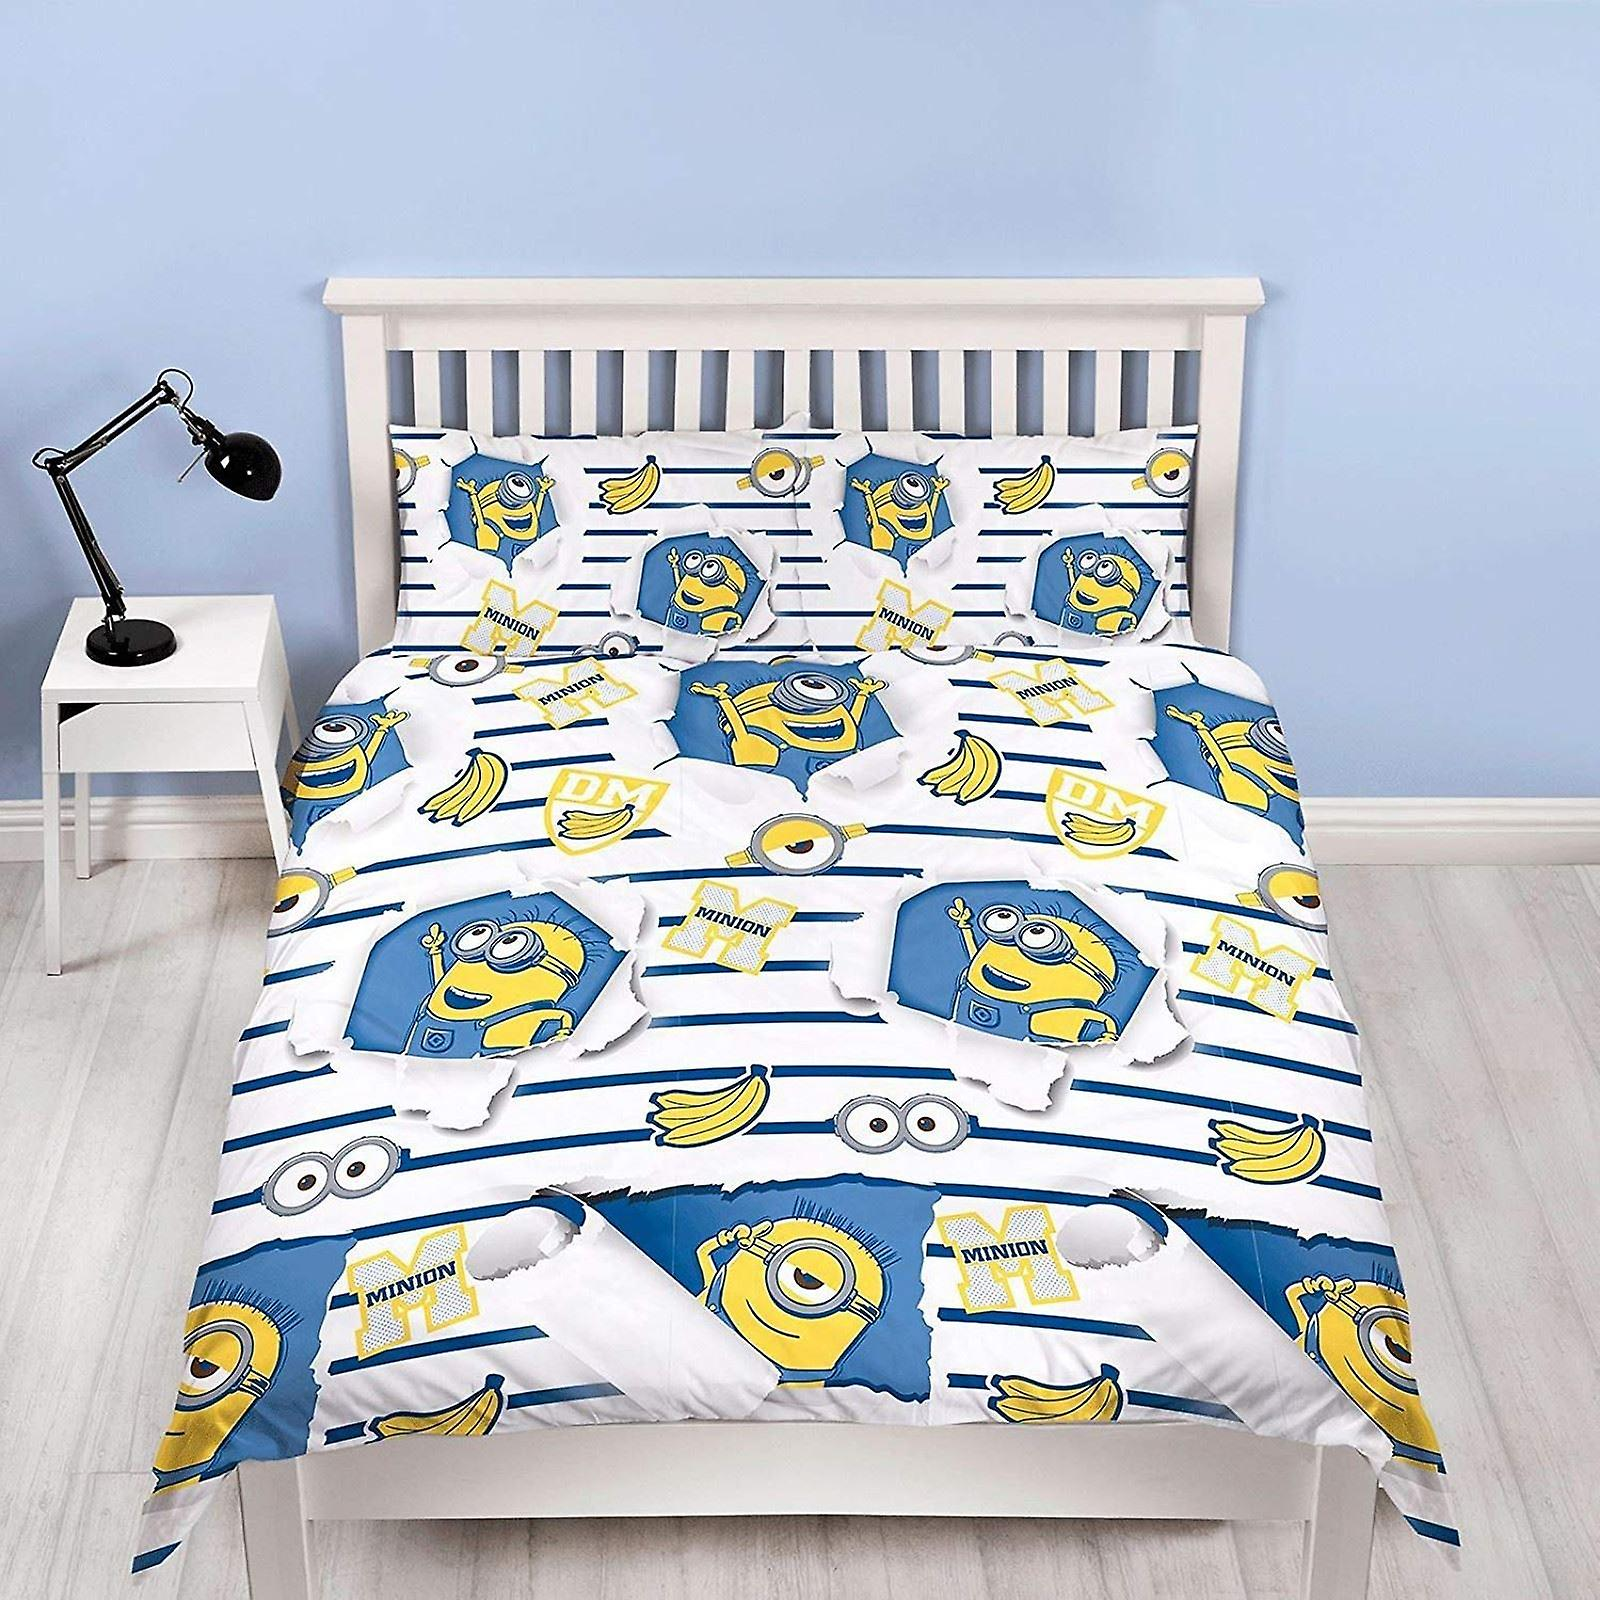 Despicable Me Awesome Double Duvet Cover